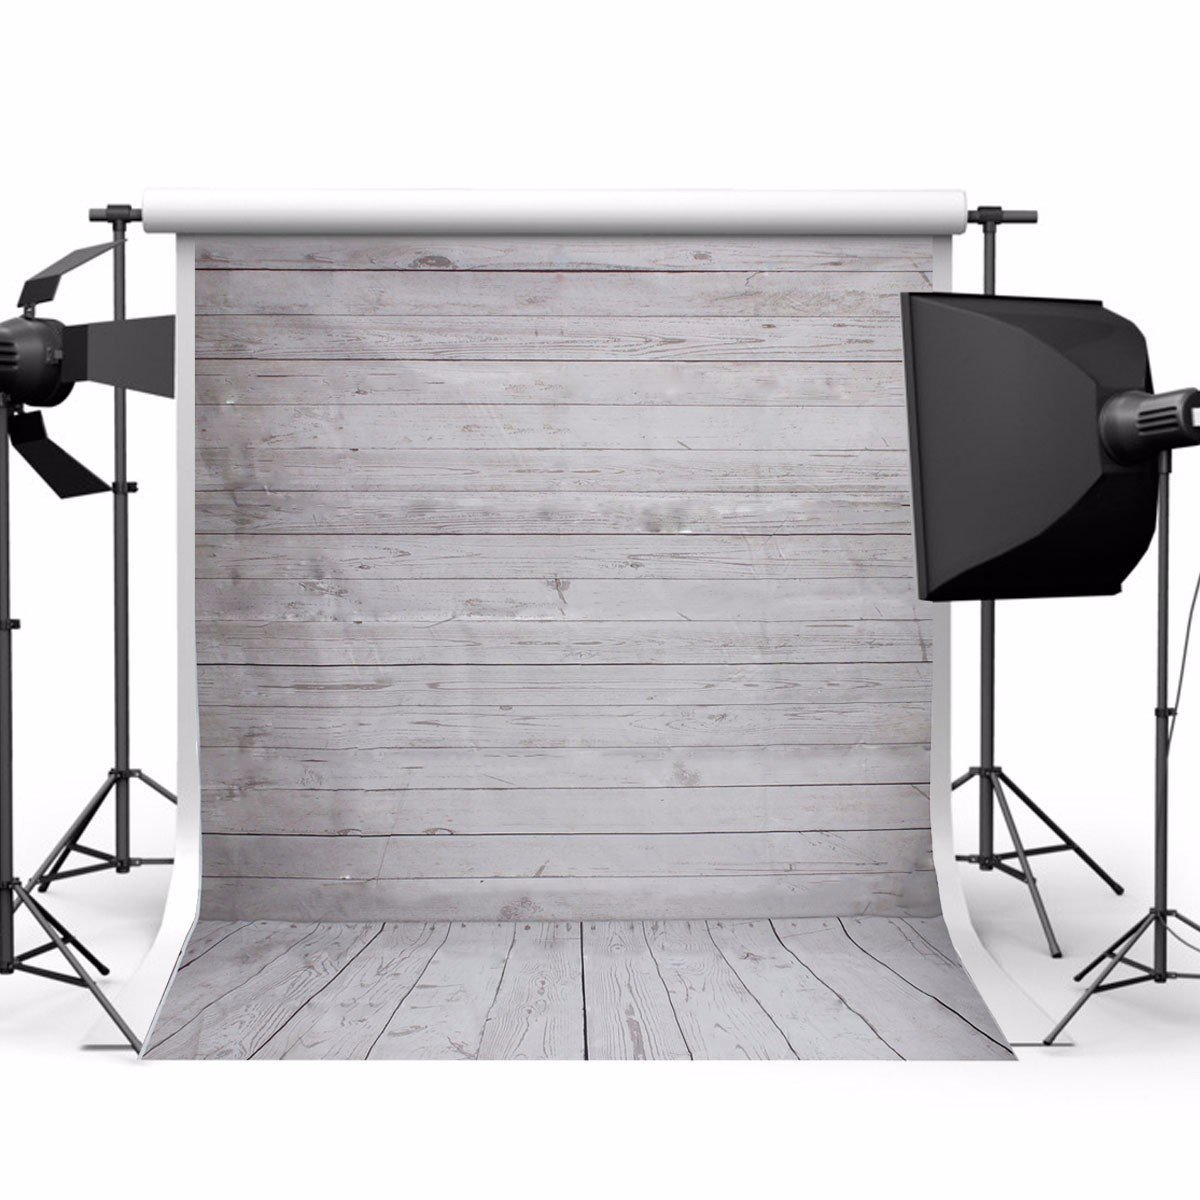 5x7ft Wood Wall Floor Studio Prop Photography Vinyl Background Photo Backdrop Best Price shanny new year backdrop vinyl custom photography backdrops prop photo studio background xn281